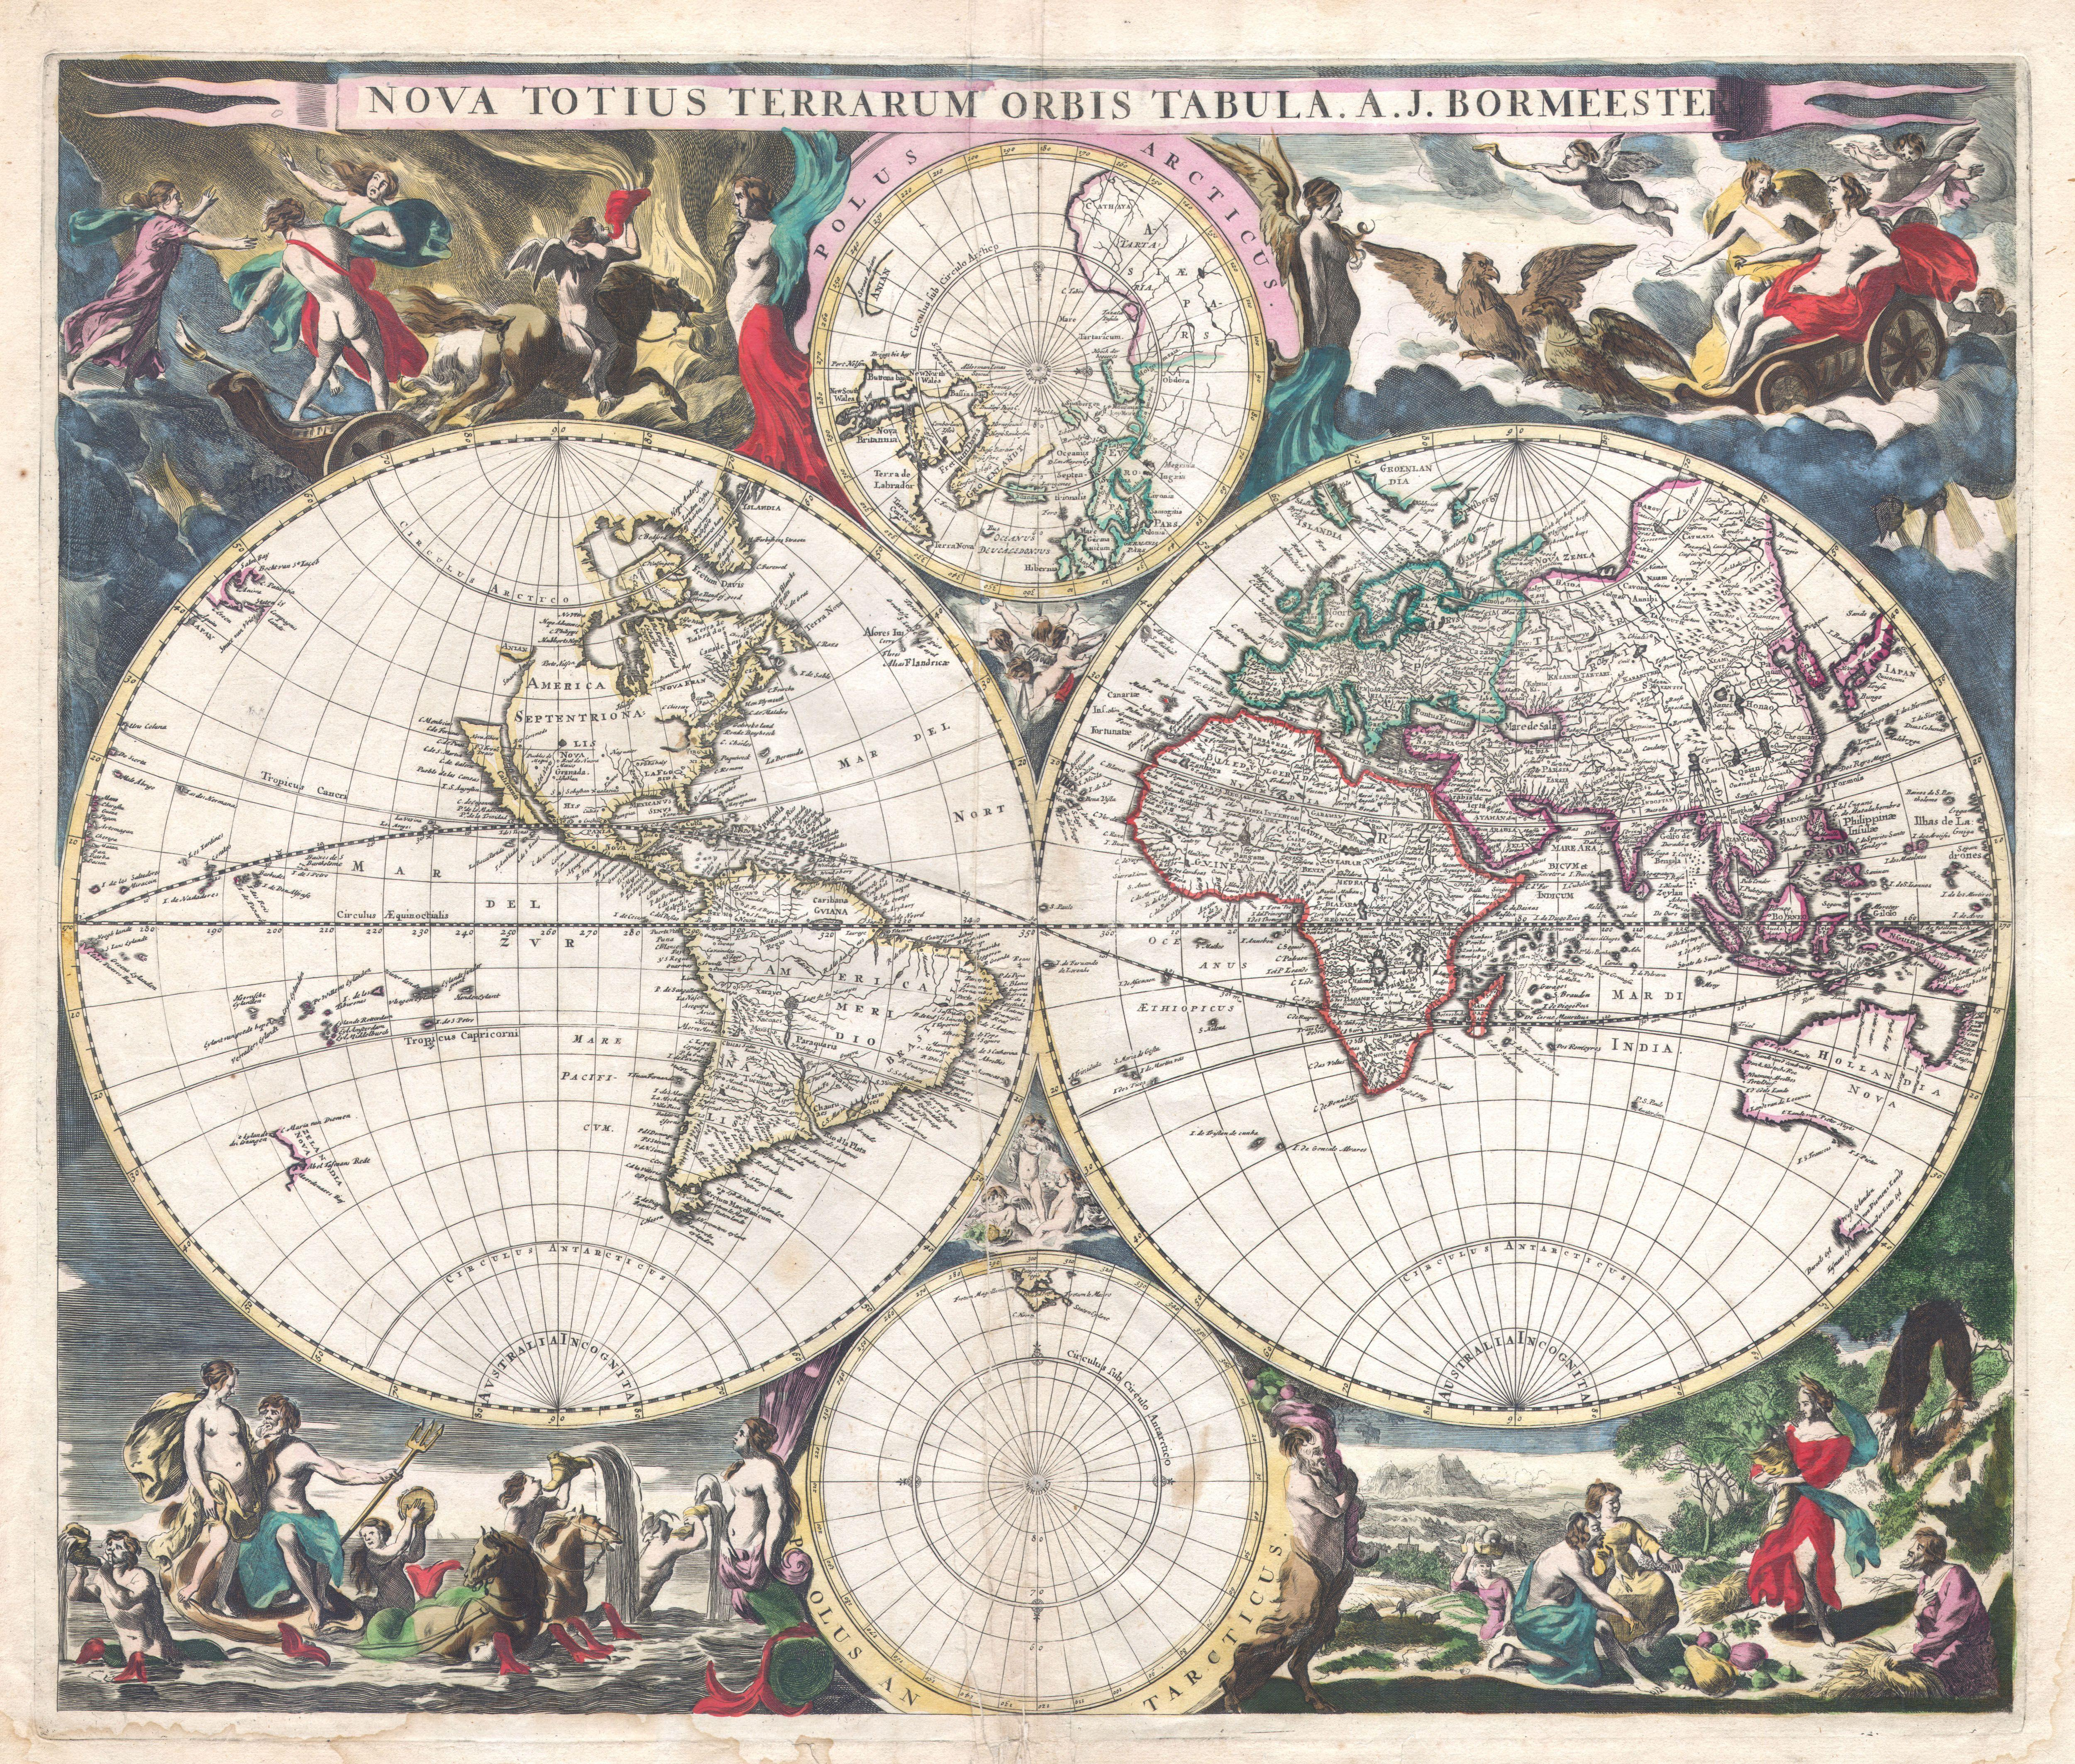 File:1685 Bormeester Map of the World - Geographicus -  TerrarumOrbis-bormeester-1685